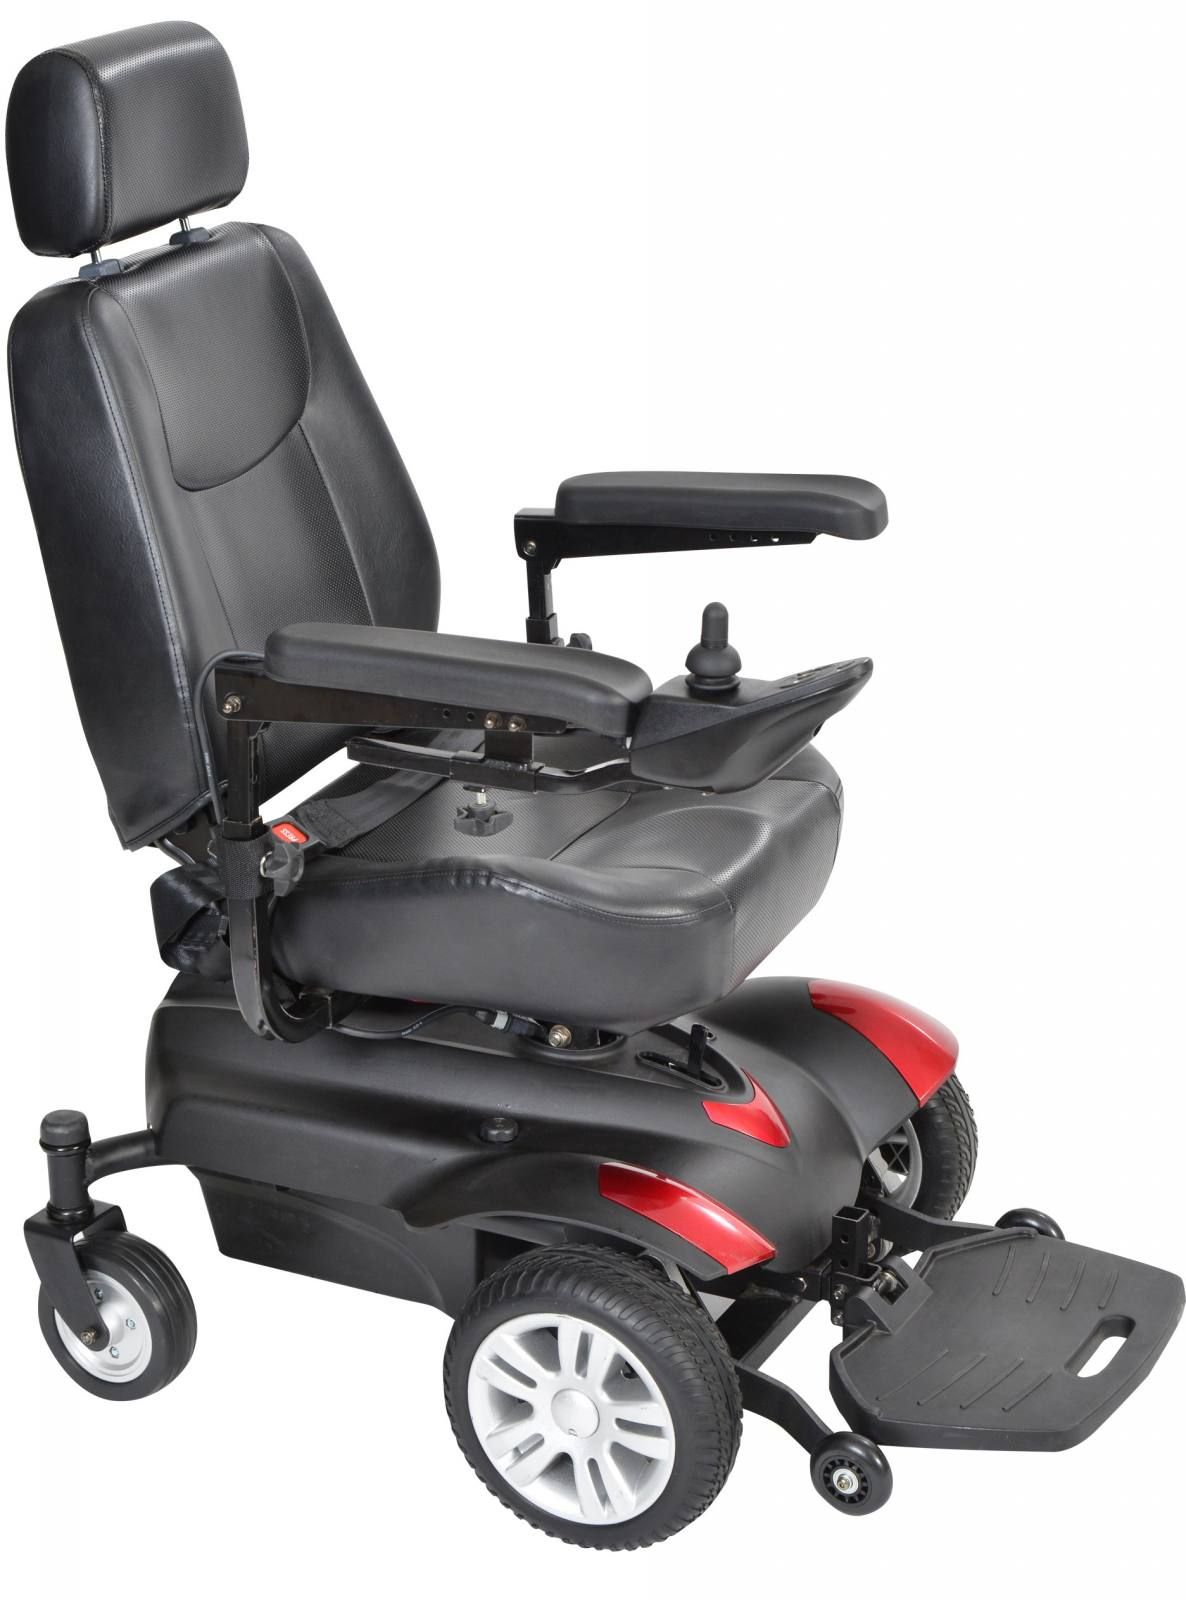 Power Chairs For Sale Chair Cover Hire Albury Titan X23 Front Wheel Wheelchair In Dallas Tx Aids Recovery 214 328 0677